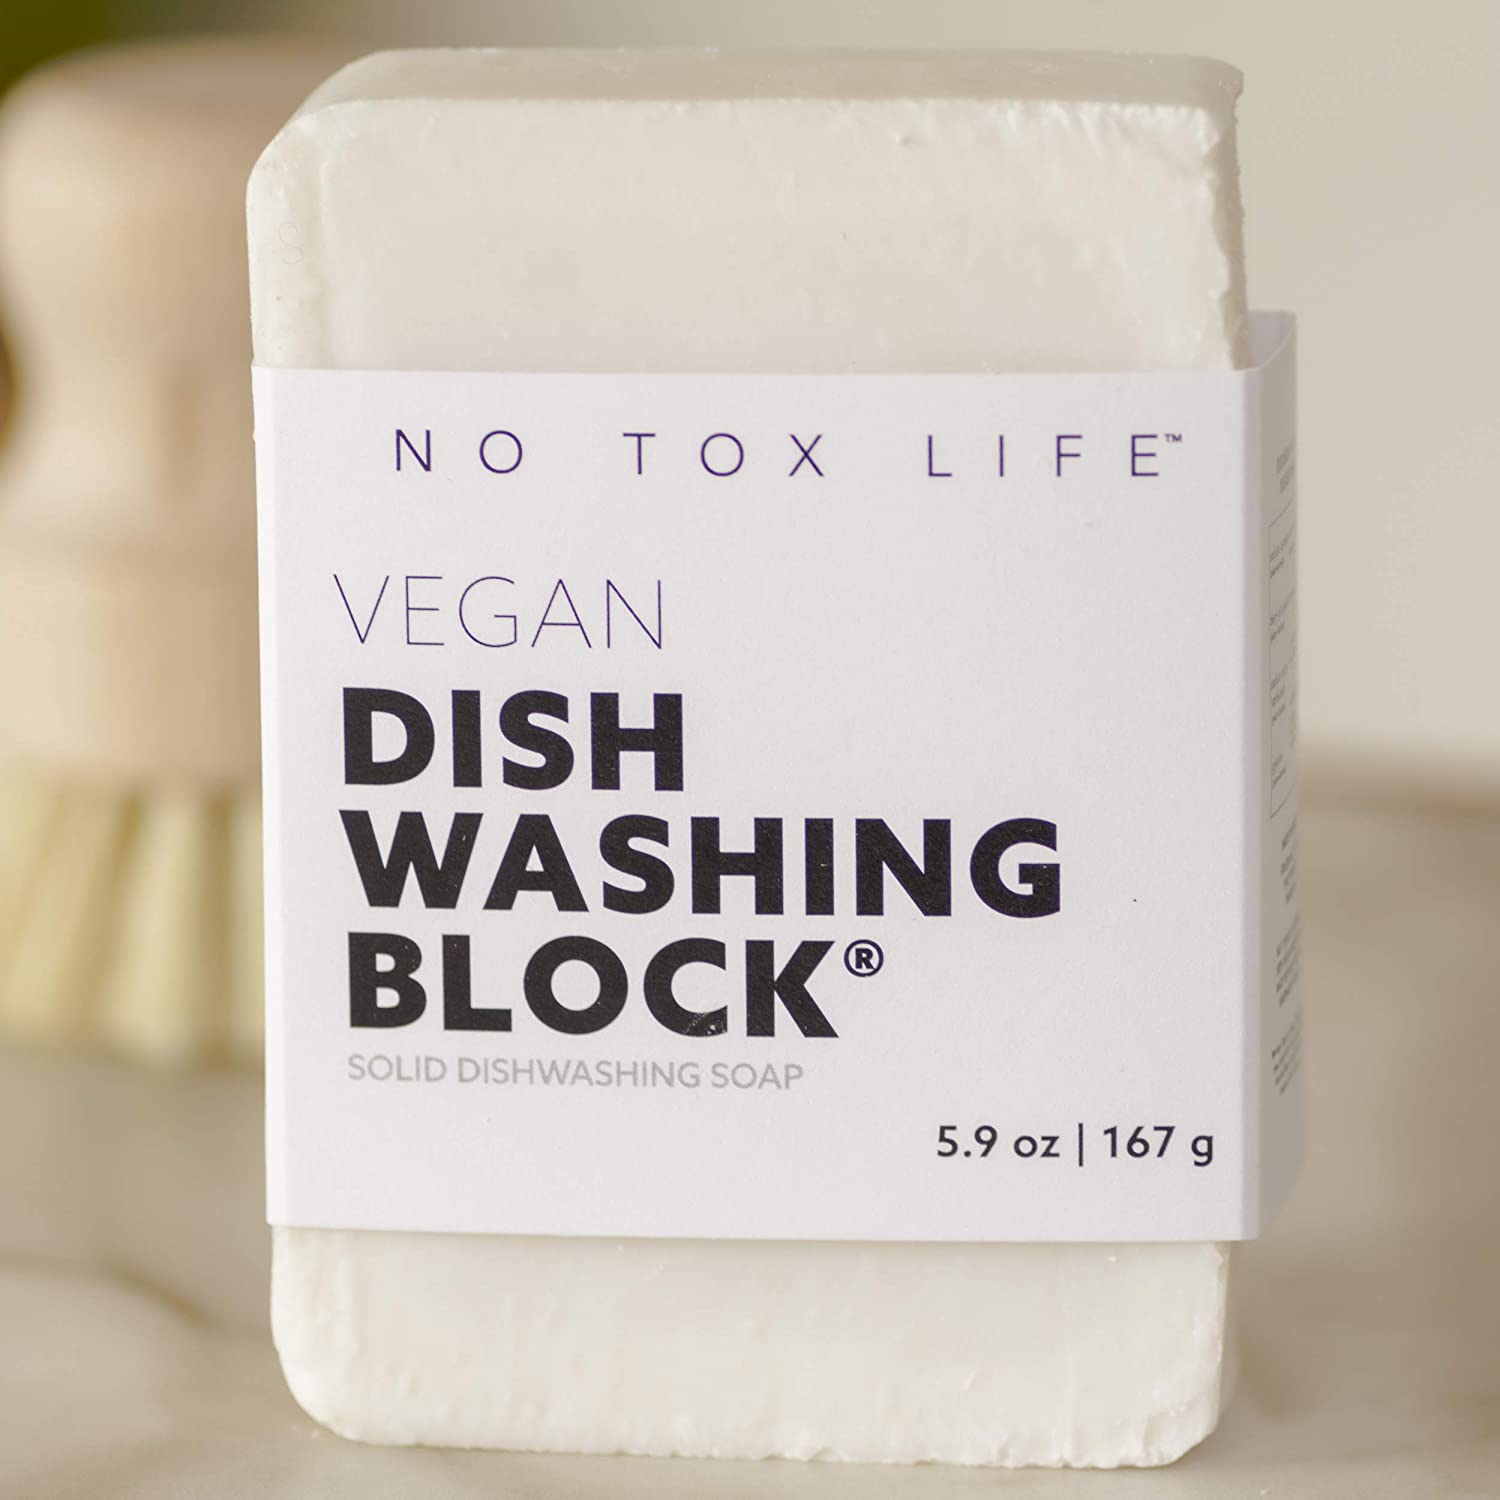 No Tox Life Dish Washing Block Soap - Free of Dyes and Fragrance - Zero Waste